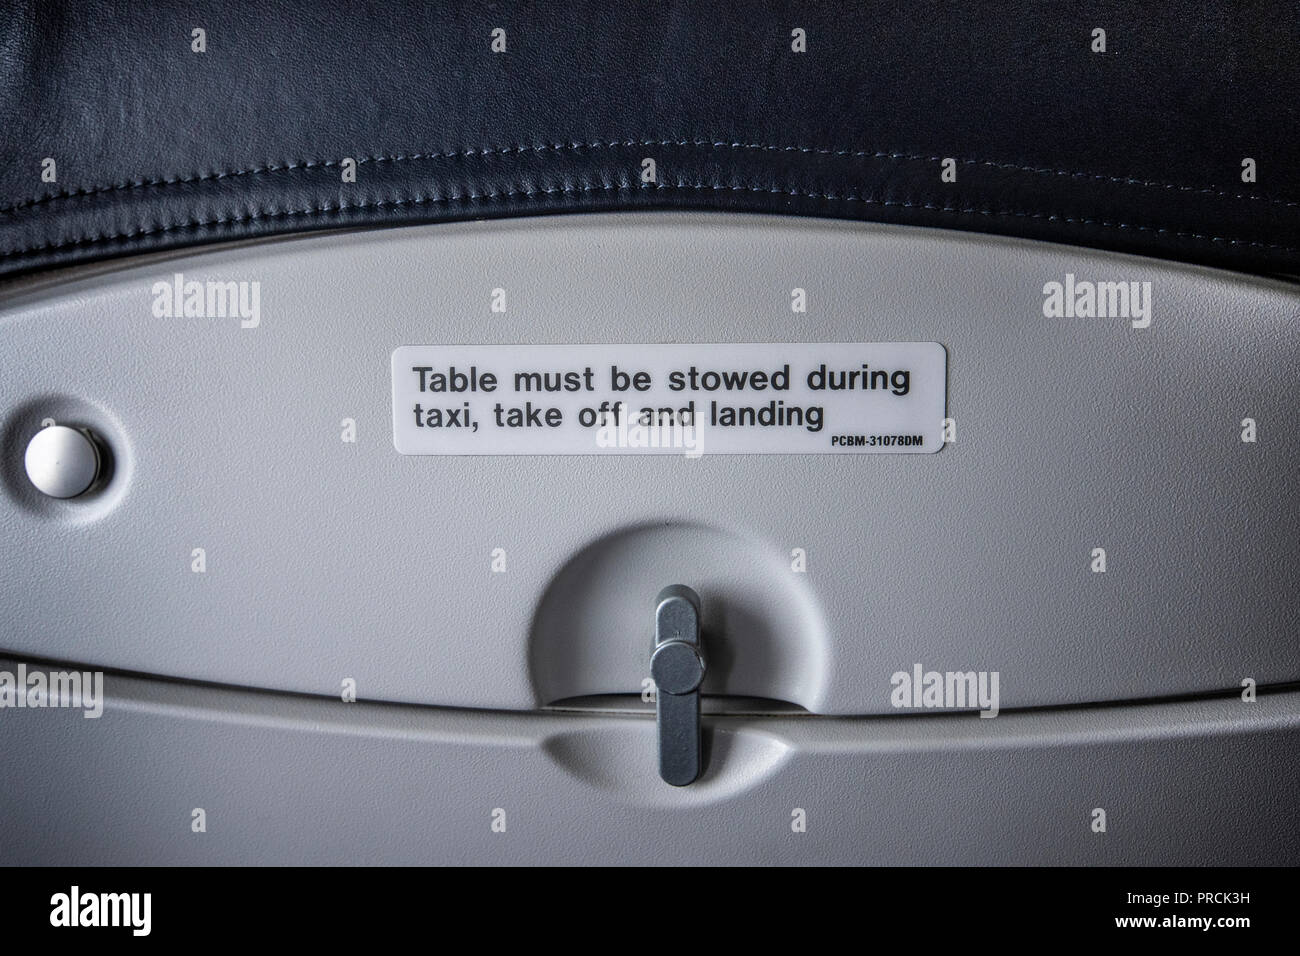 Airplane passenger table usage sign indicating table use during landing and takeoff. - Stock Image